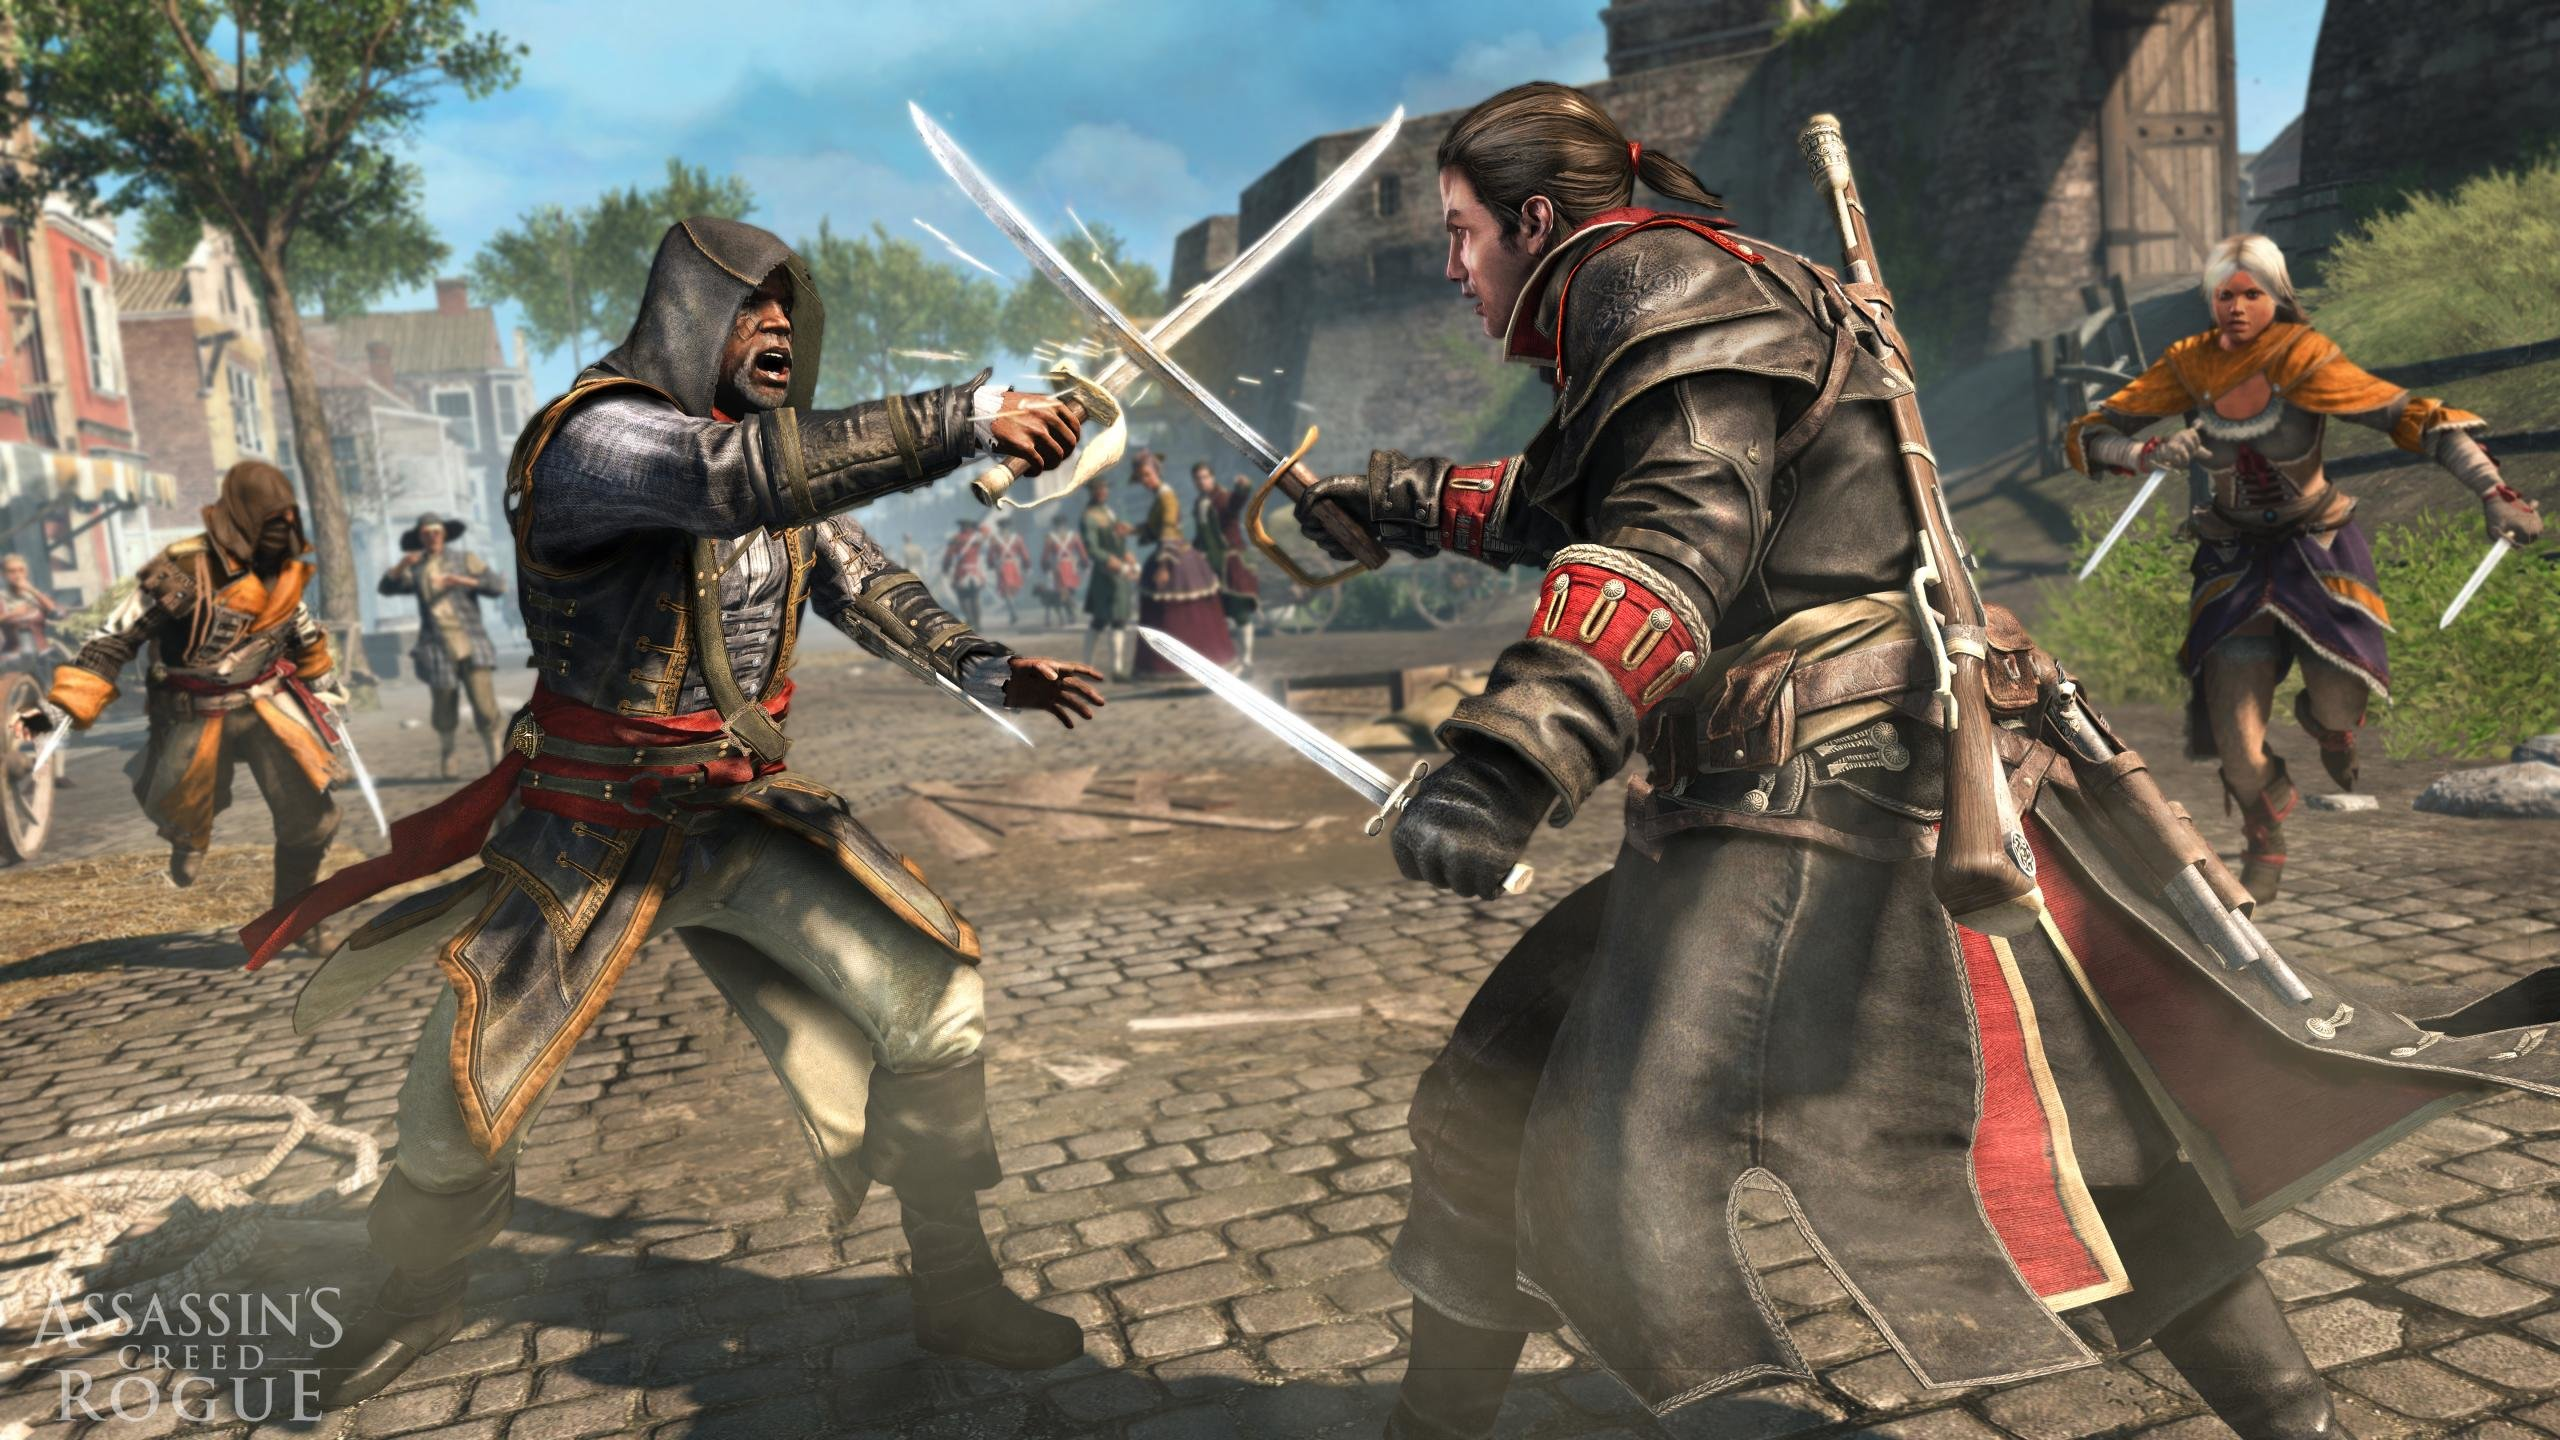 Best Assassin S Creed Rogue Wallpaper Id 231506 For High Resolution